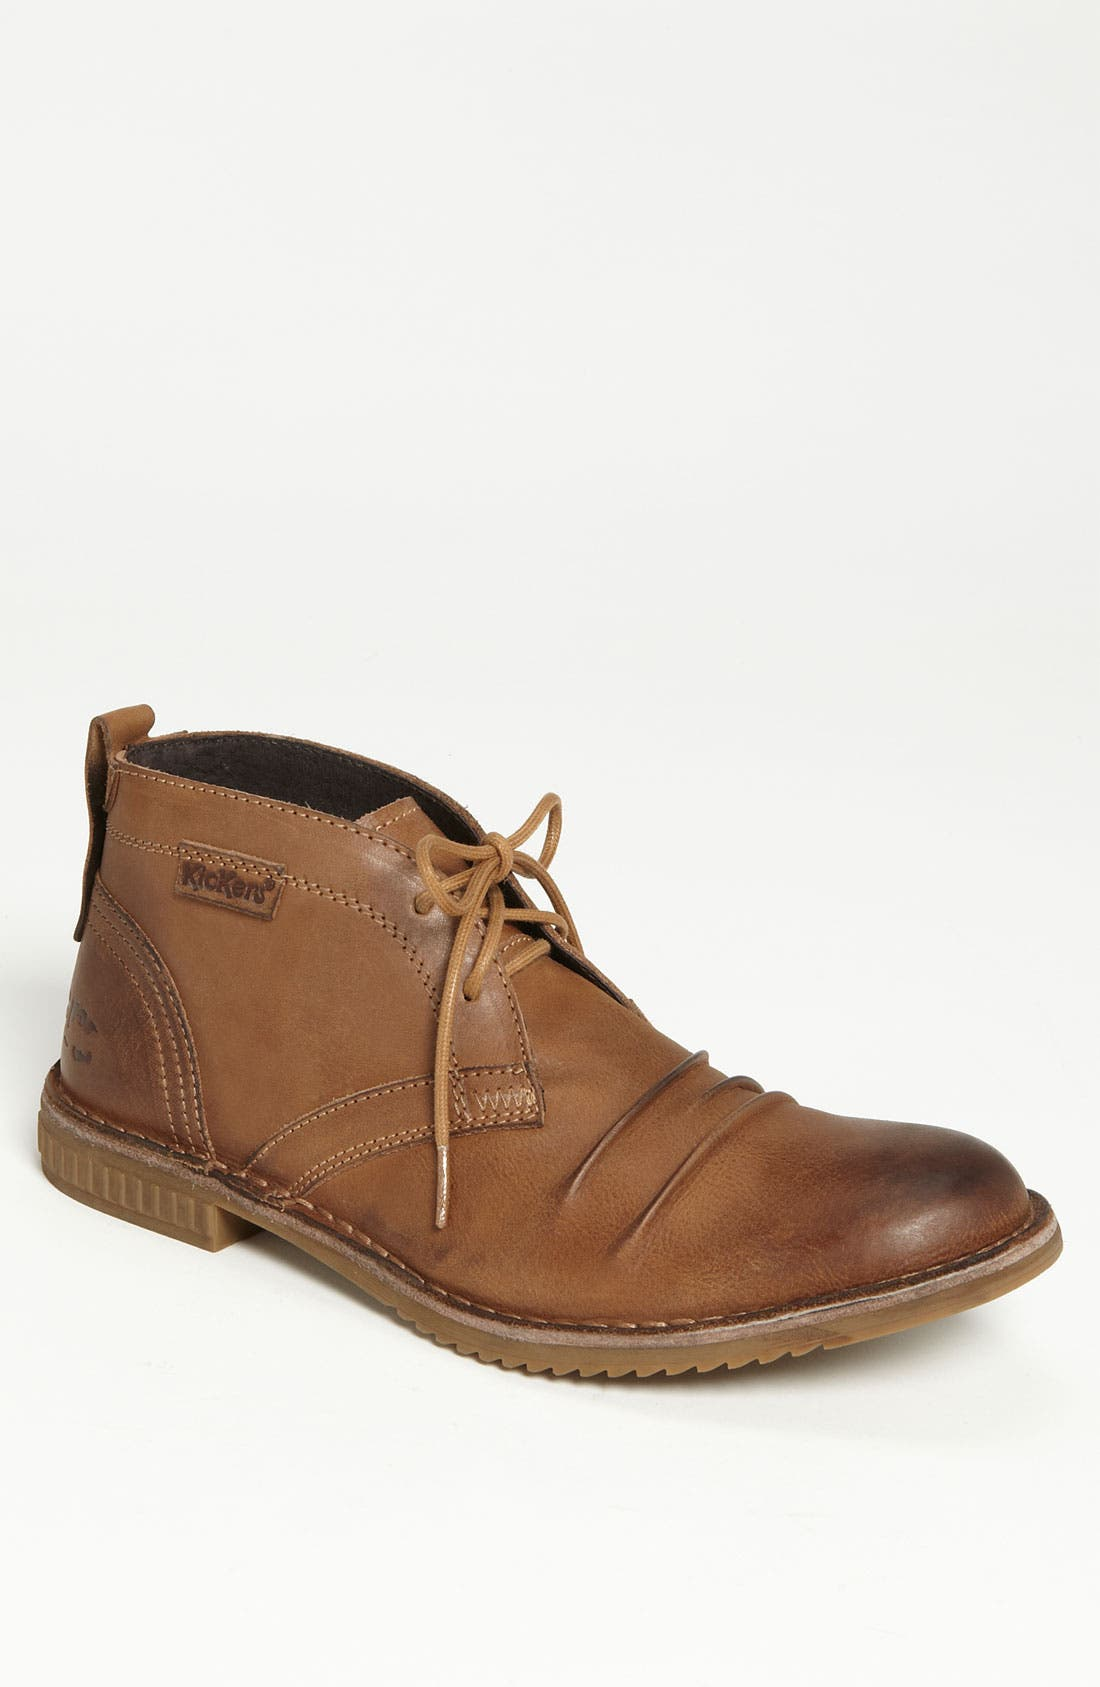 Alternate Image 1 Selected - Kickers 'Jecho' Chukka Boot